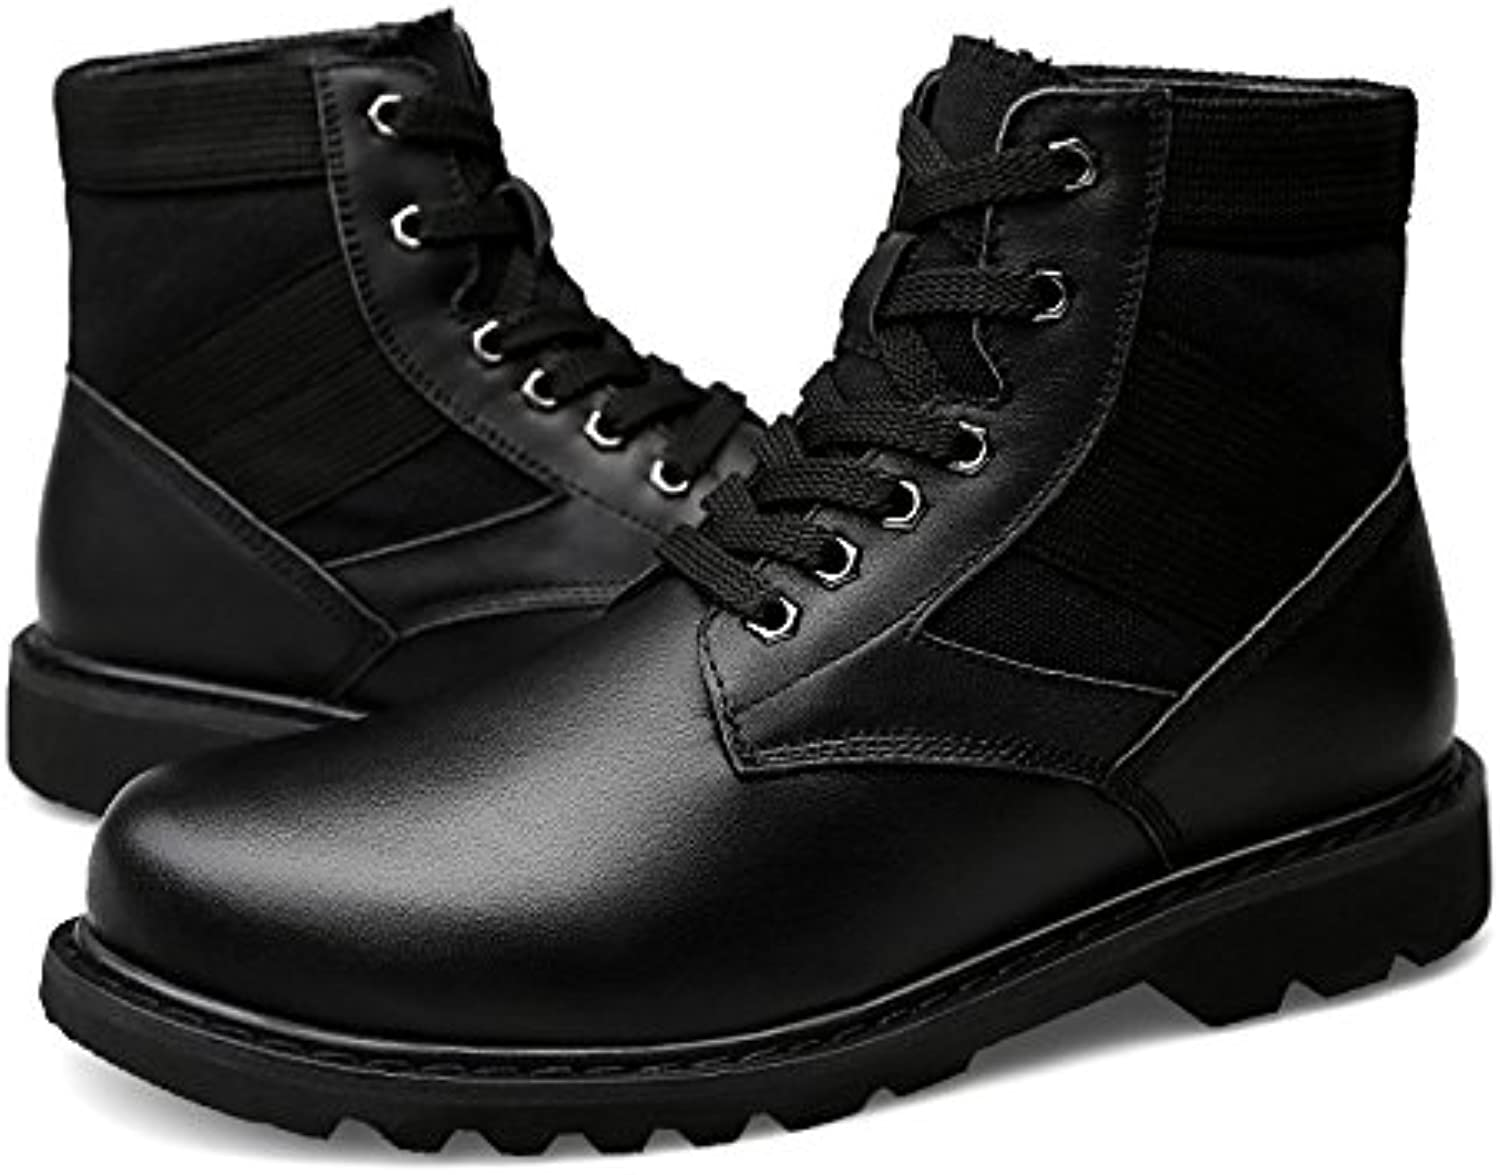 Shuo lan Men's Ankle Boots Casua High Top Lace Up Rubber Outsole Martin Boots(Warm Velvet Optional)